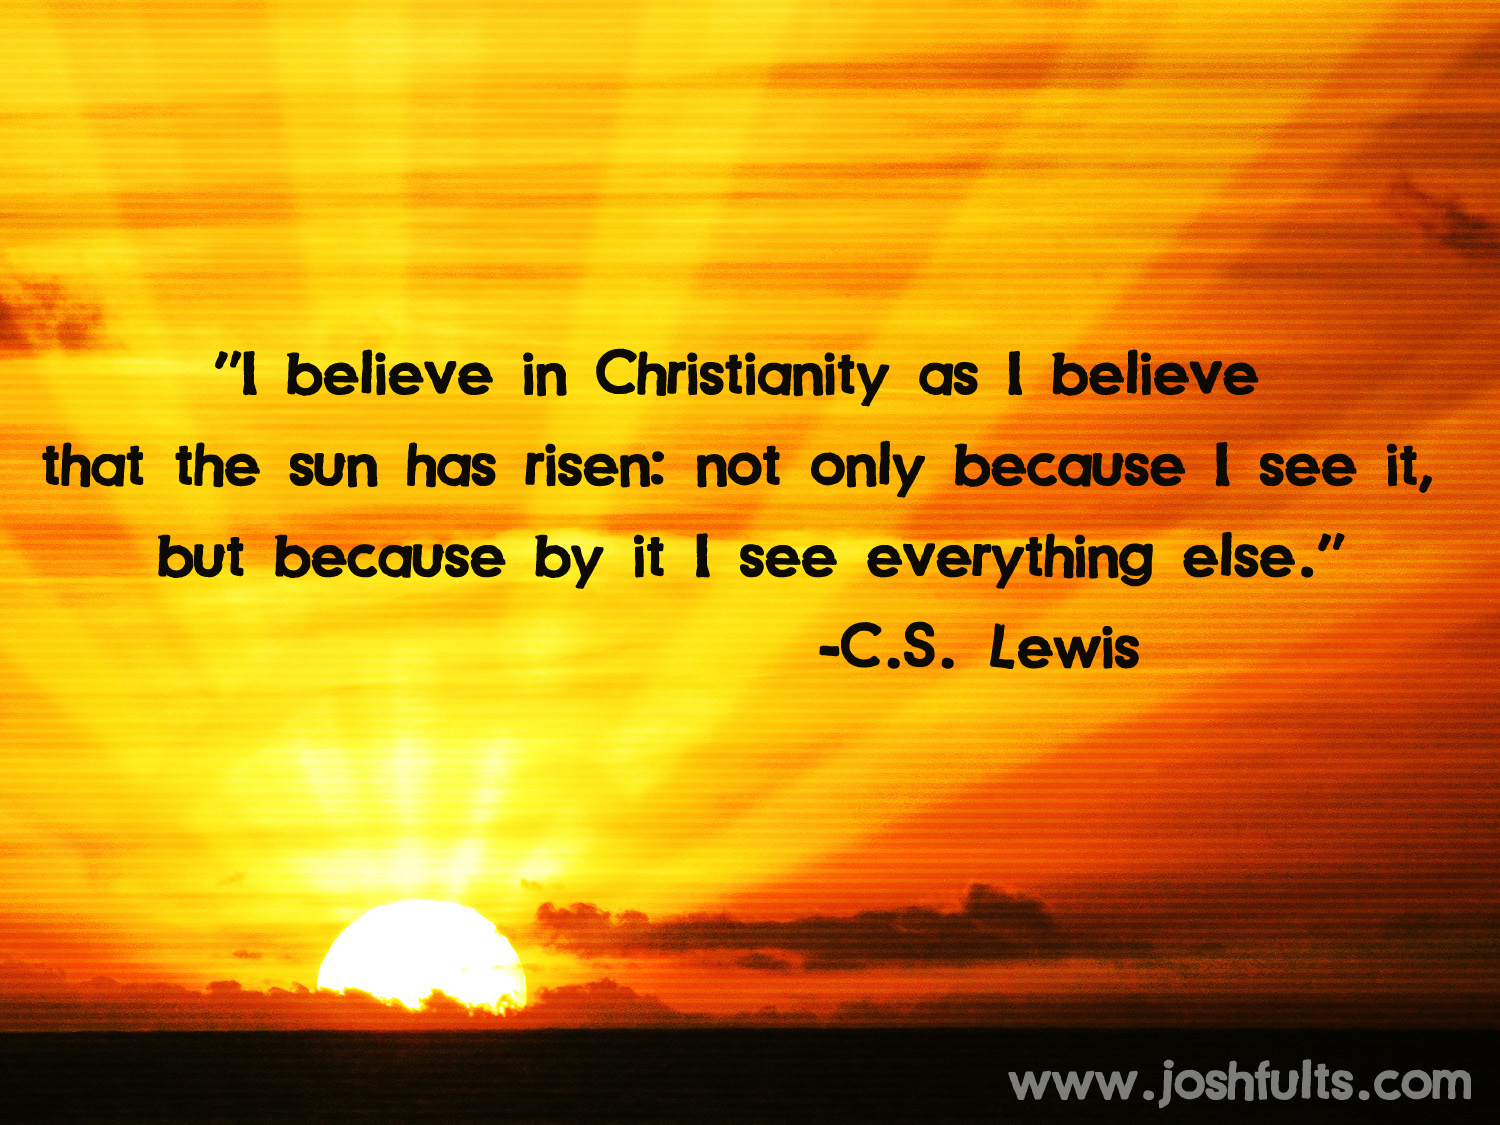 Godly Quotes Inspirational: TOUCHING HEARTS: CHRISTIAN QUOTES & IMAGES